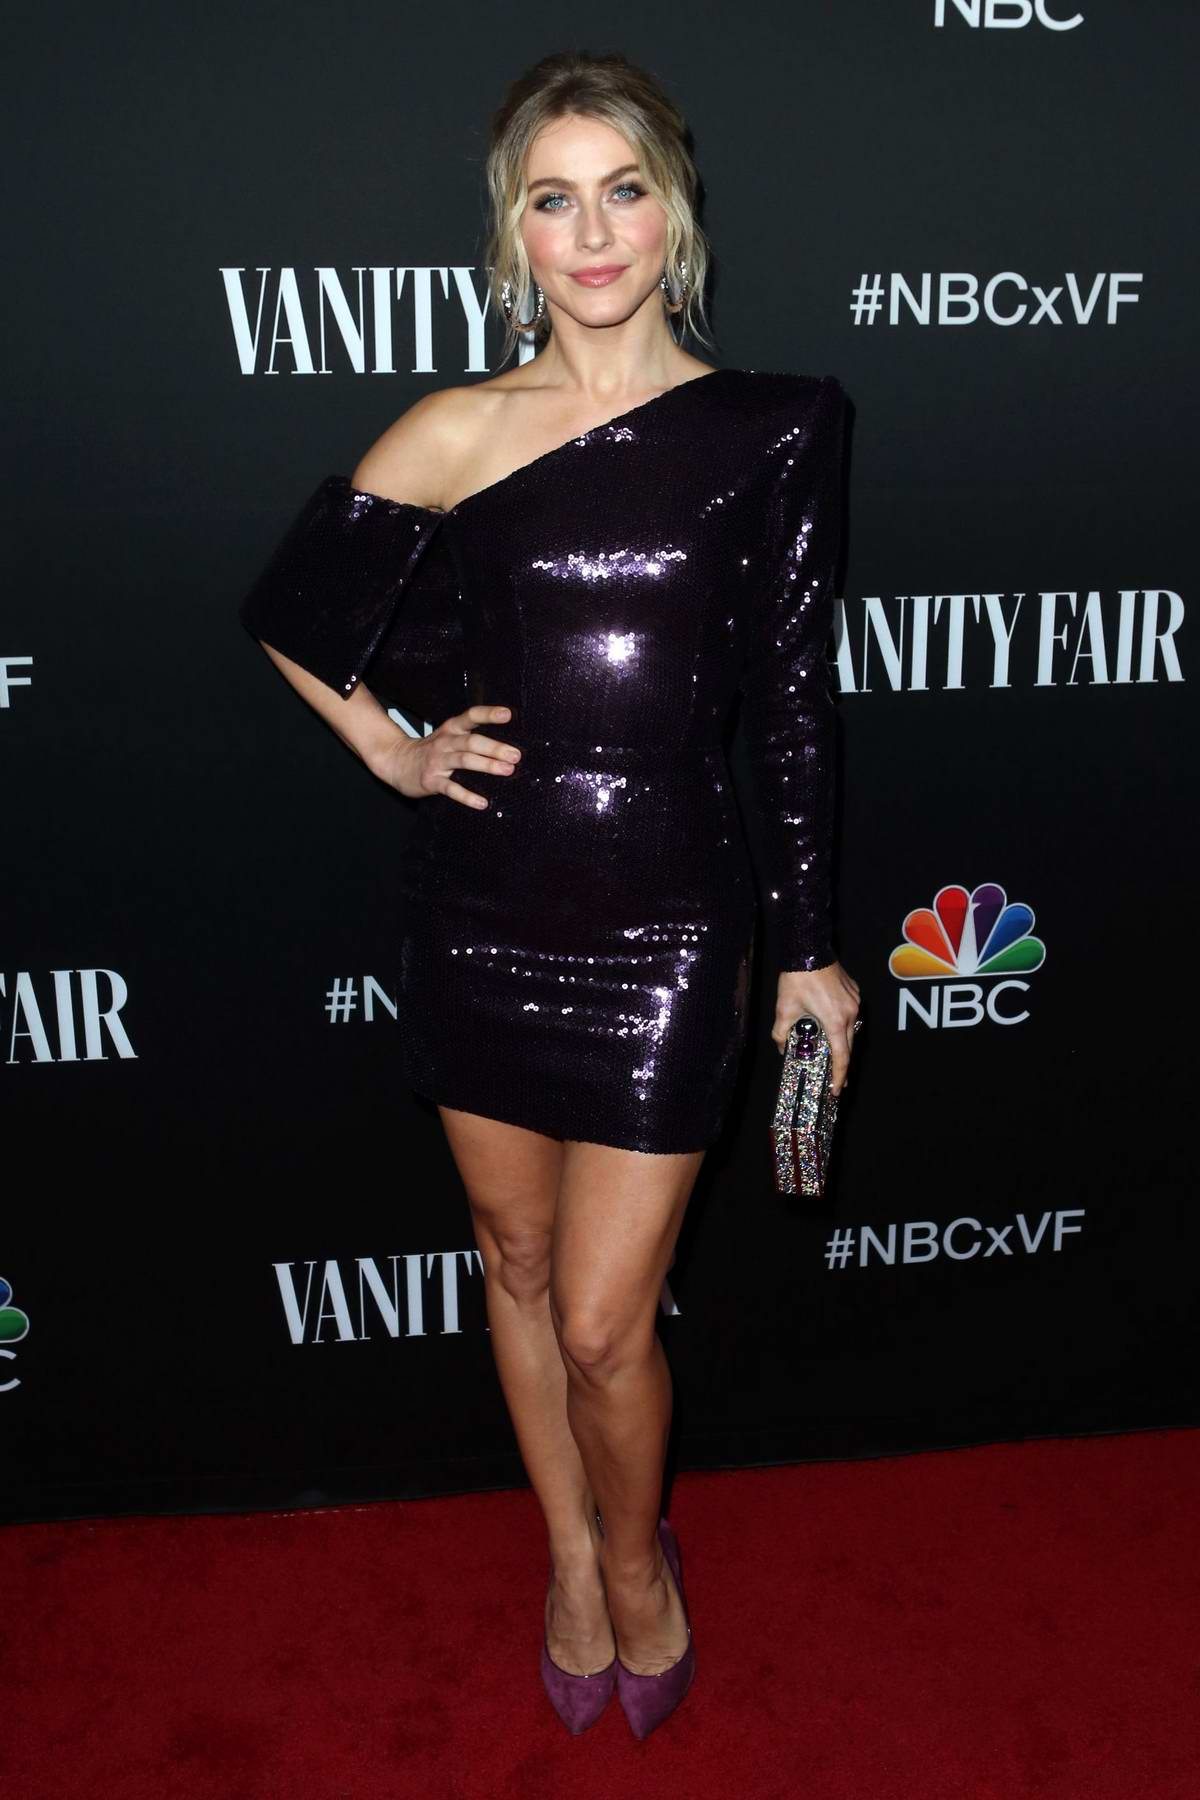 Julianne Hough attends NBC And Vanity Fair's Celebration Of The Season in Los Angeles